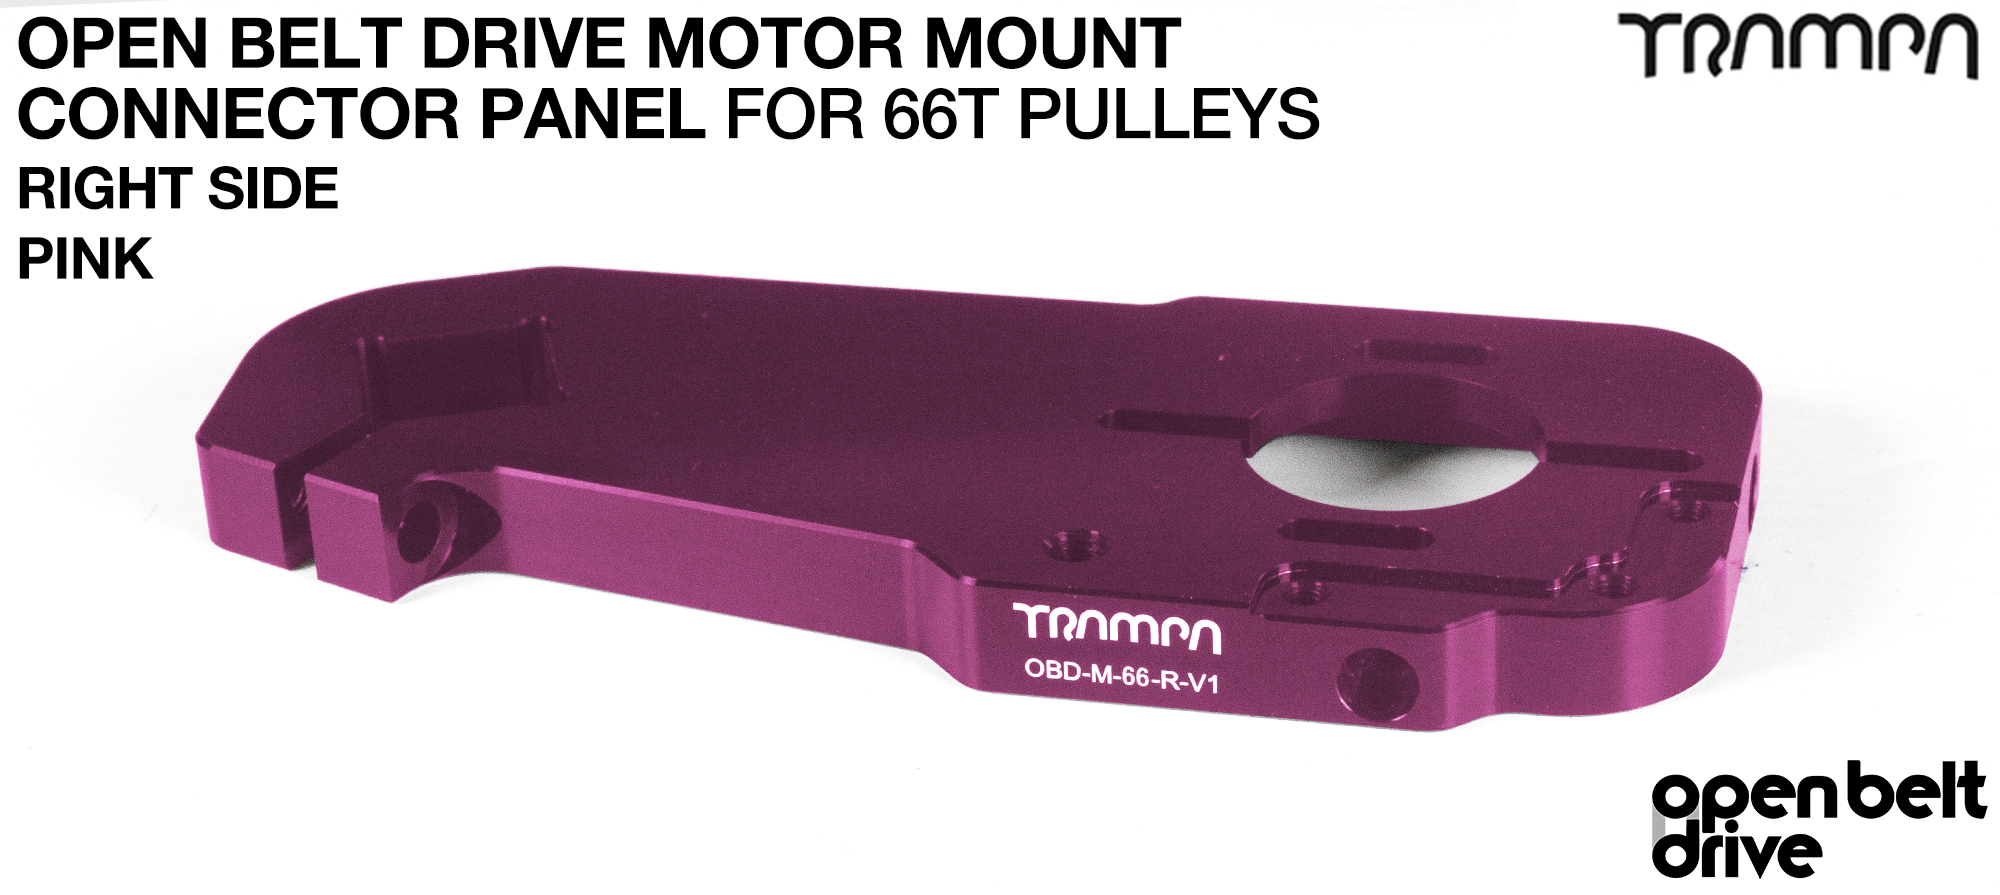 OBD Open Belt Drive Motor Mount Connector Panel for 66 tooth Pulleys - GOOFY - PINK